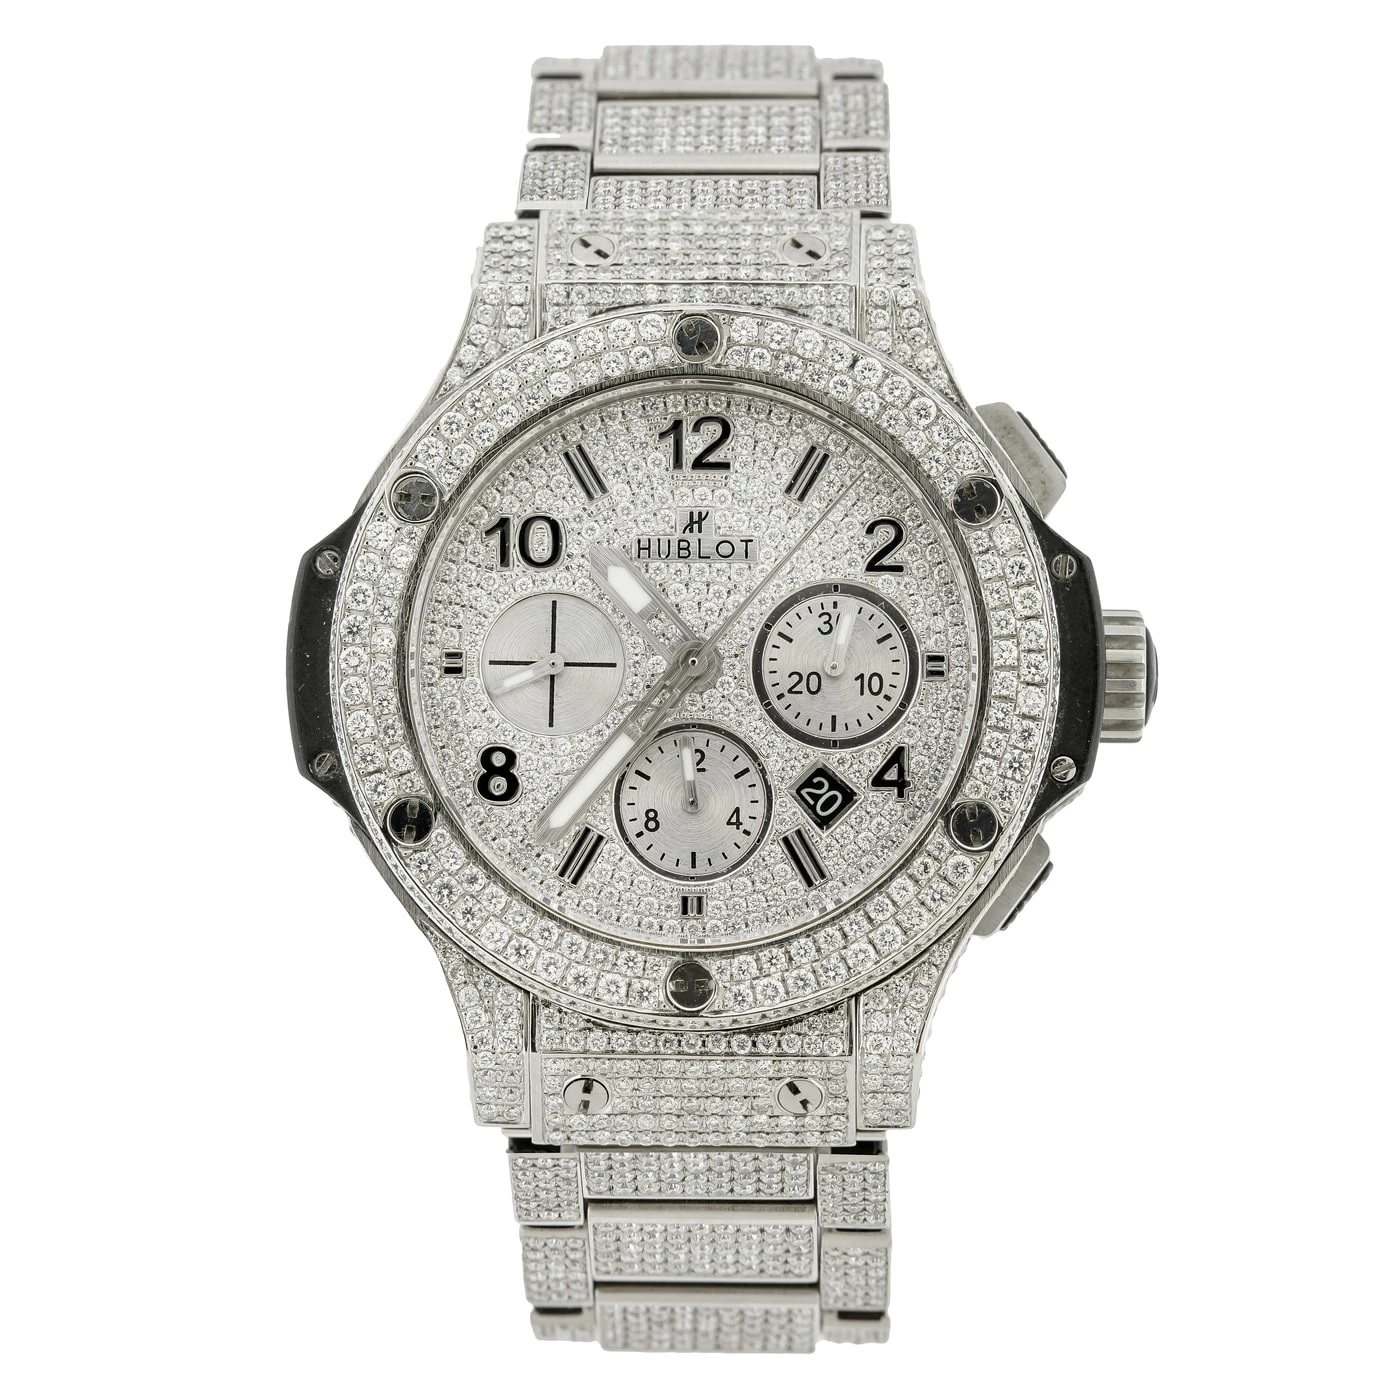 Iced Out 44mm 301.sx Hublot Big Bang Full Diamond Watch for Men Sale 16ct Main Image